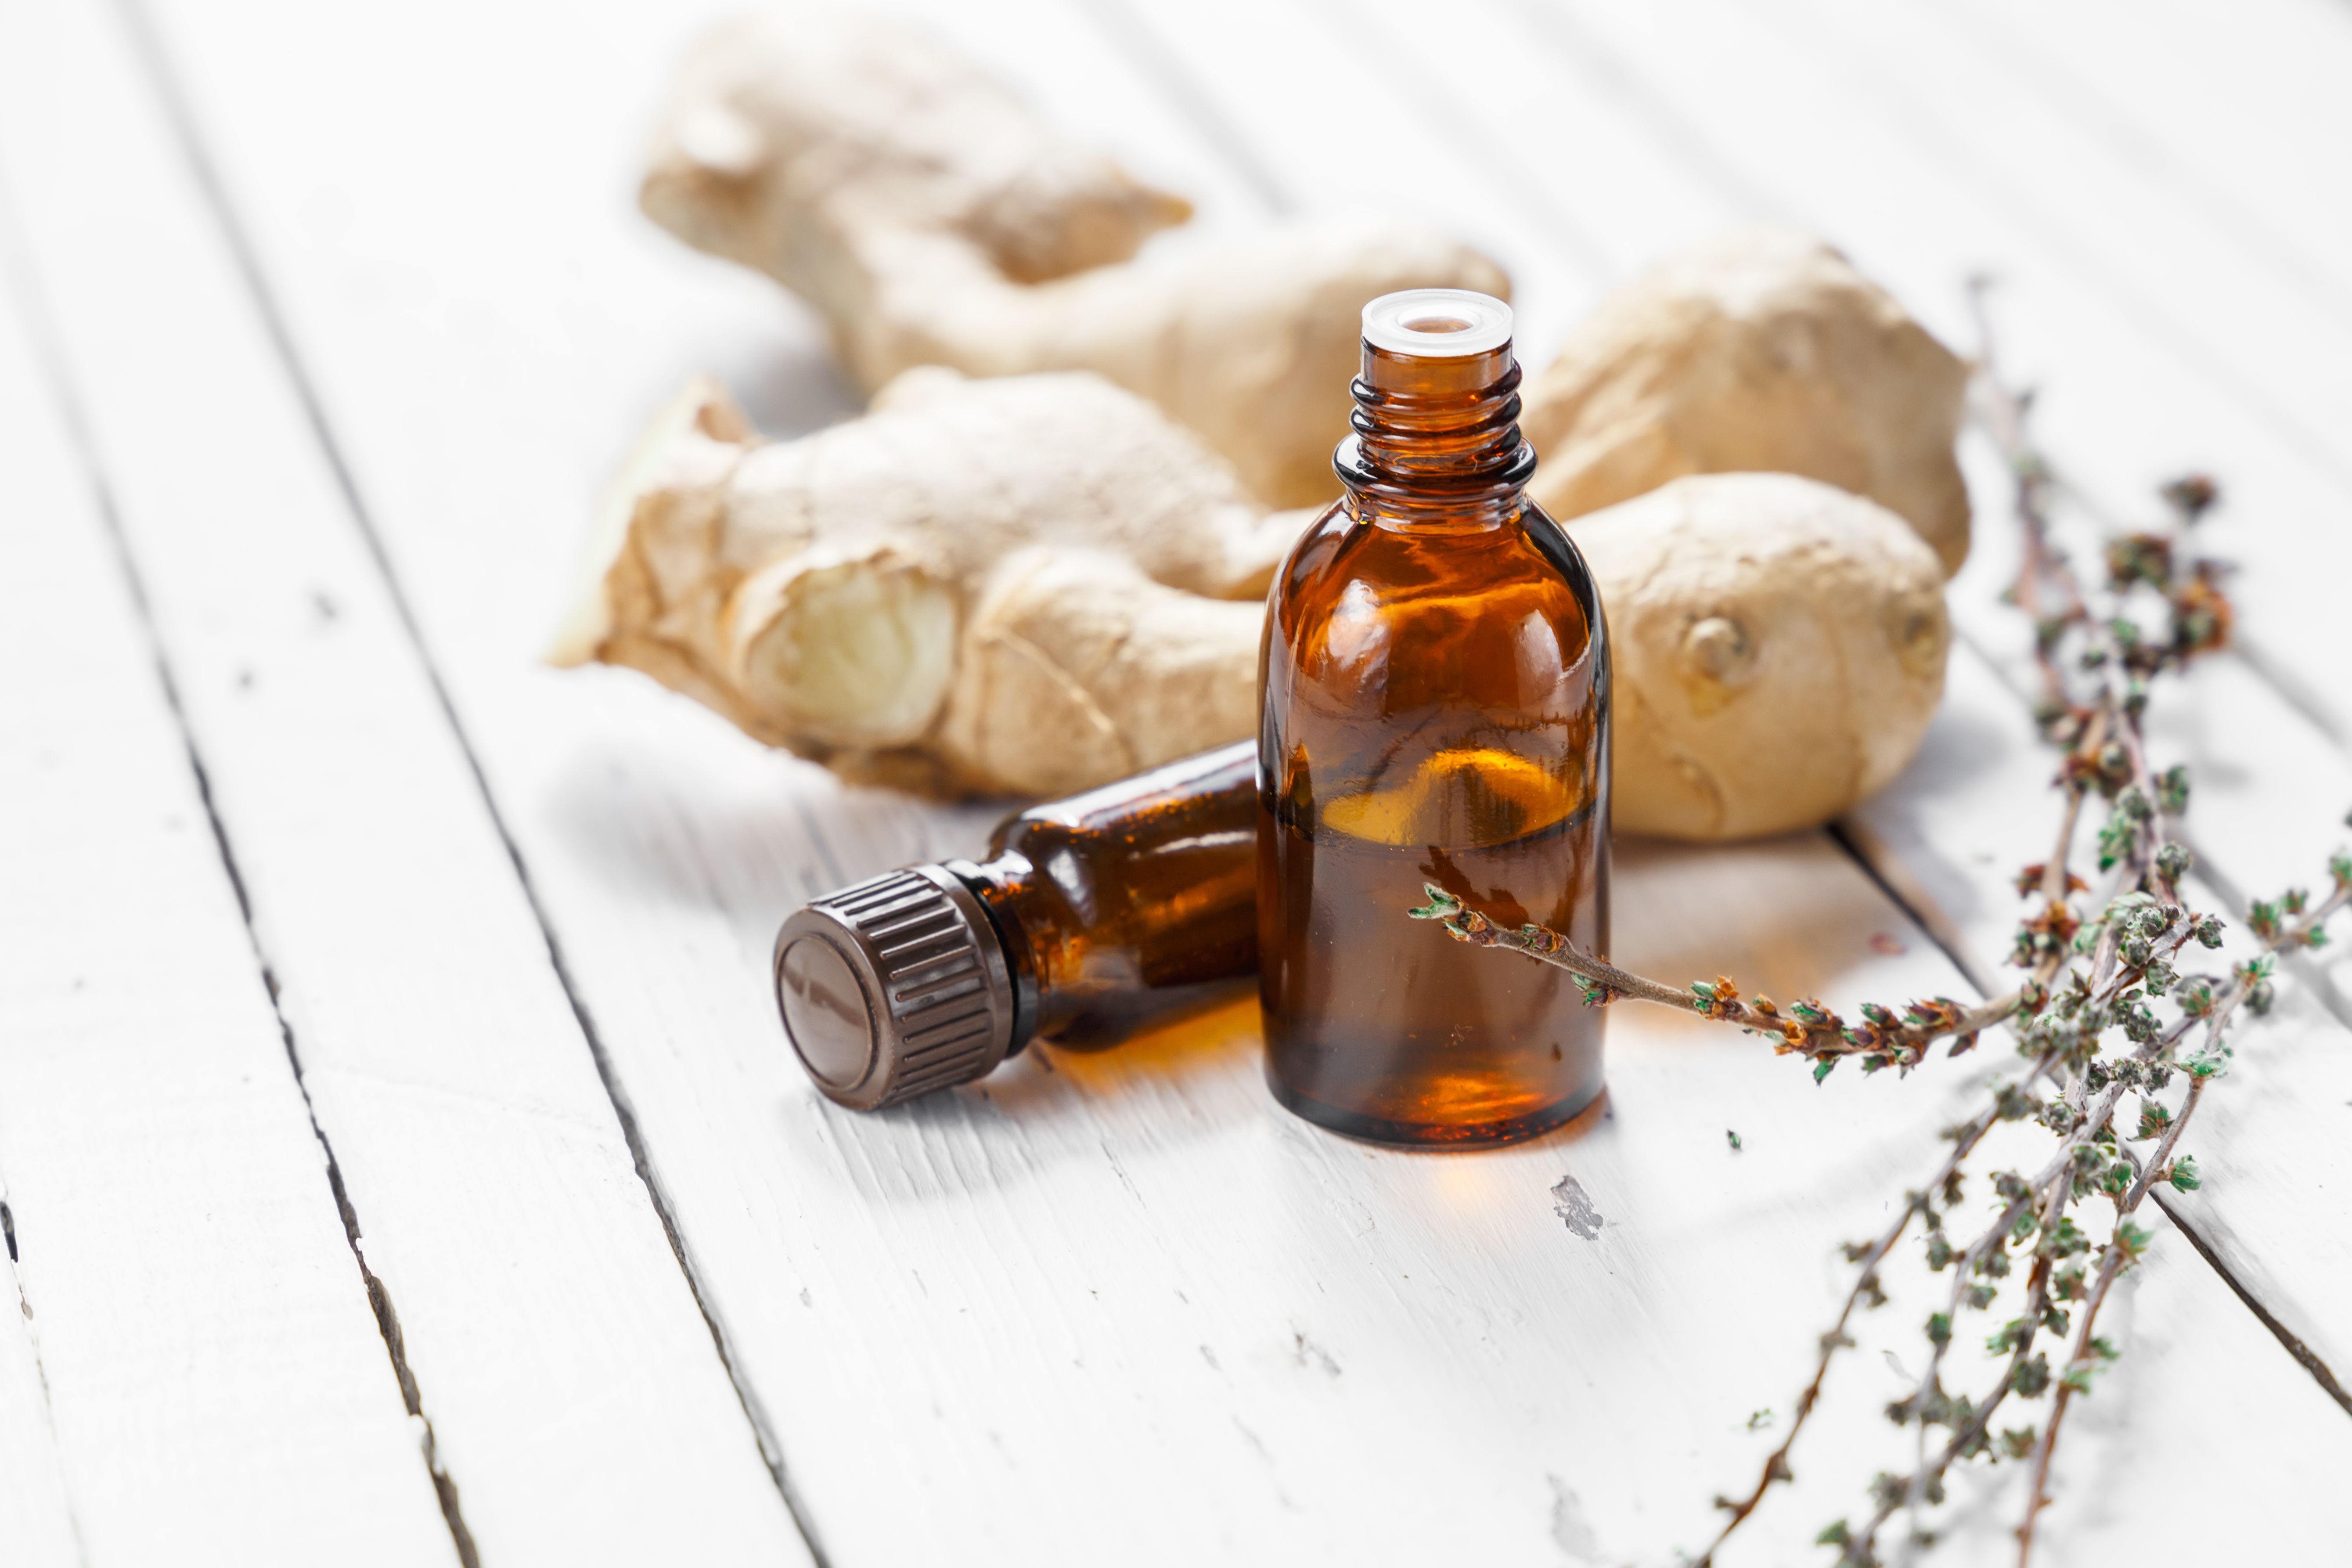 How to Use Ginger Oil for Swelling and Inflammation